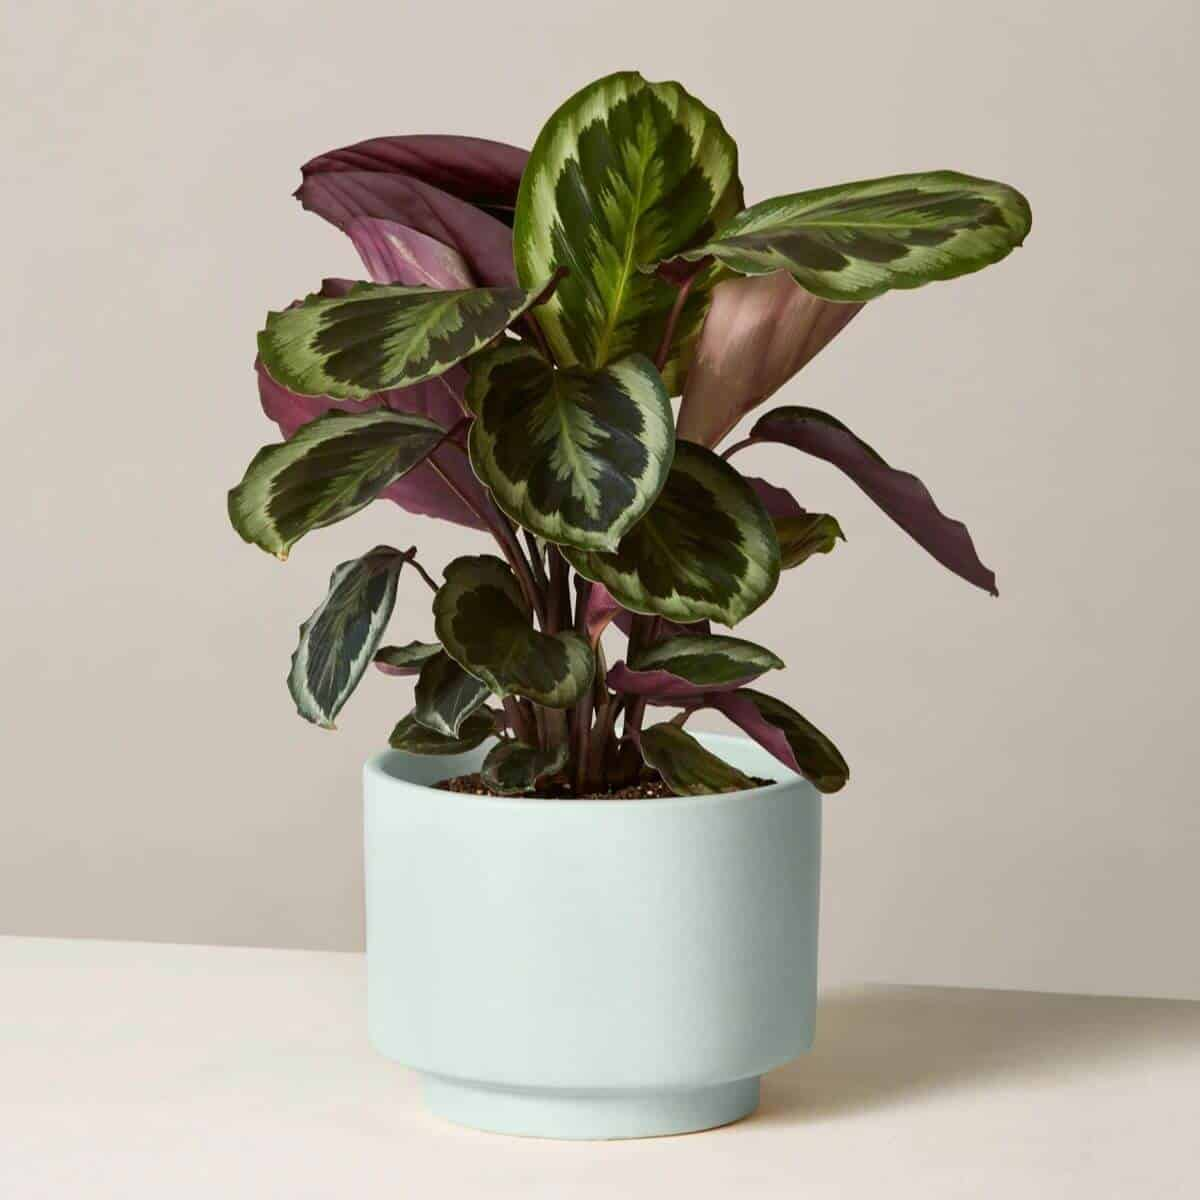 Calathea plant in a mint blue pot.